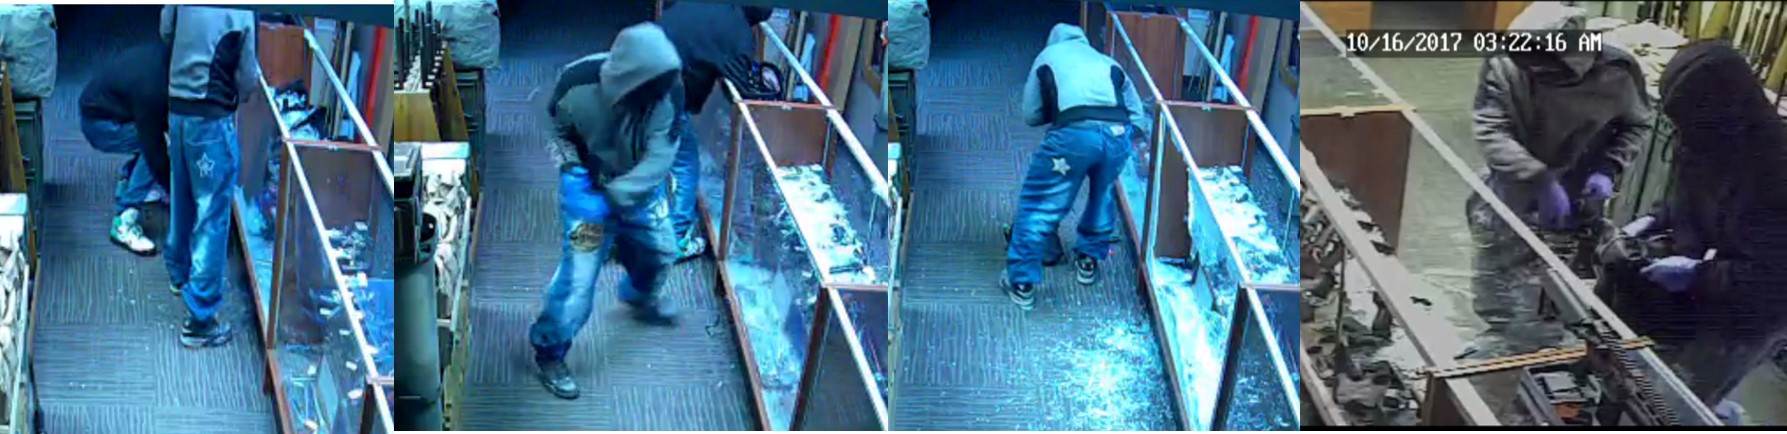 Image of the suspects actively robbing the store.